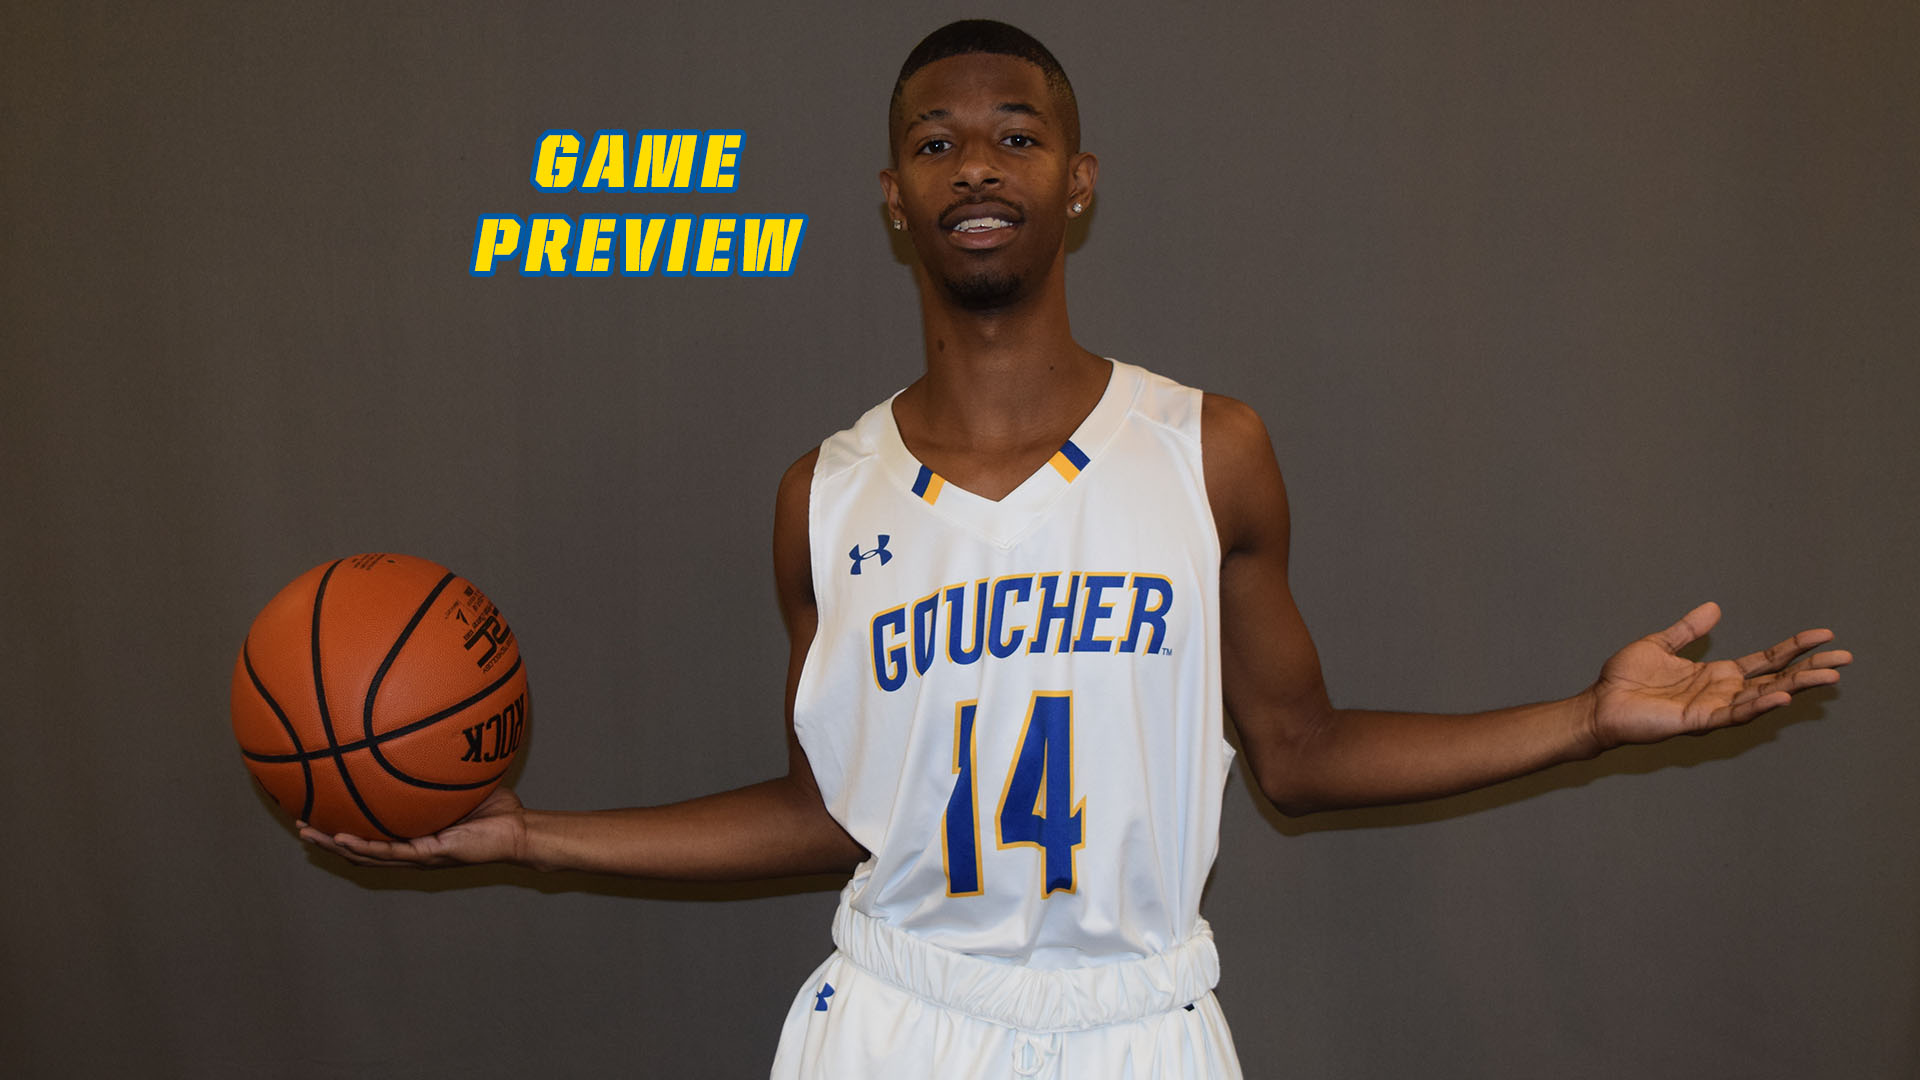 Goucher Men's Basketball Set To Battle Drew At Home On Saturday